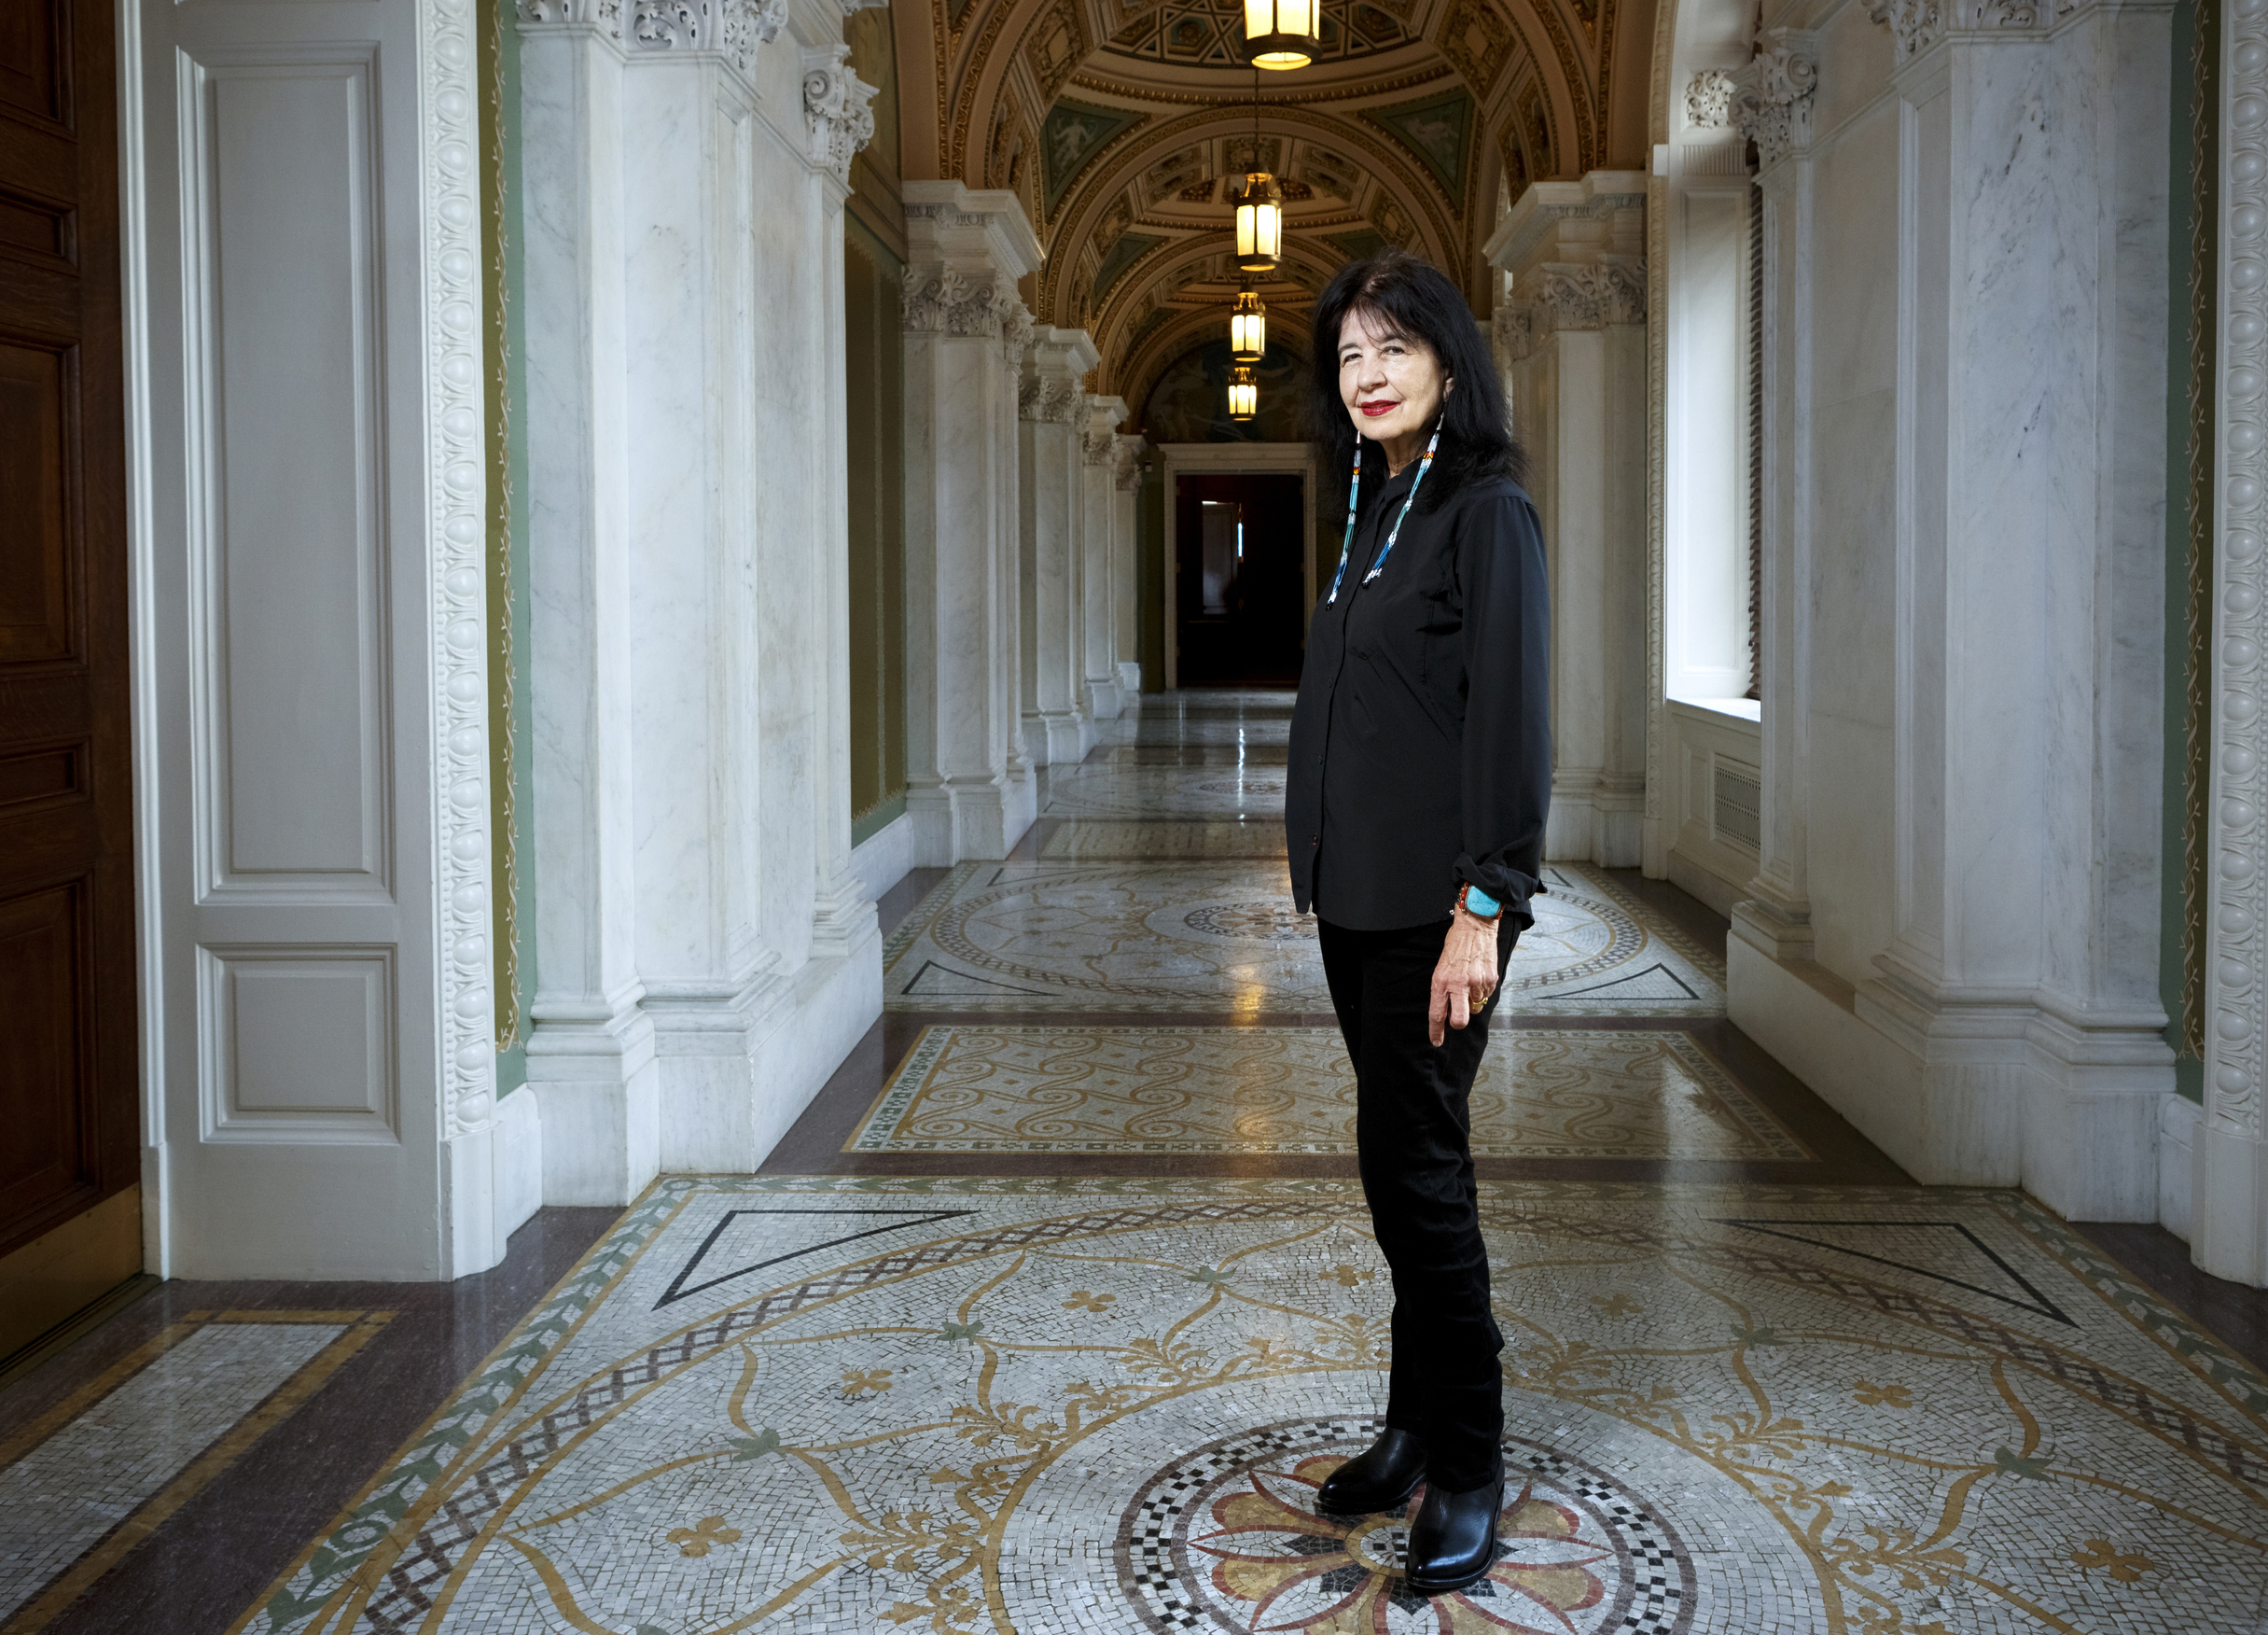 In this June 6, 2019 photo, Joy Harjo, of the United States, poses inside the Library of Congress, in Washington. Harjo has been named the country's next poet laureate, becoming the first Native American to hold that position. Librarian of Congress Carla